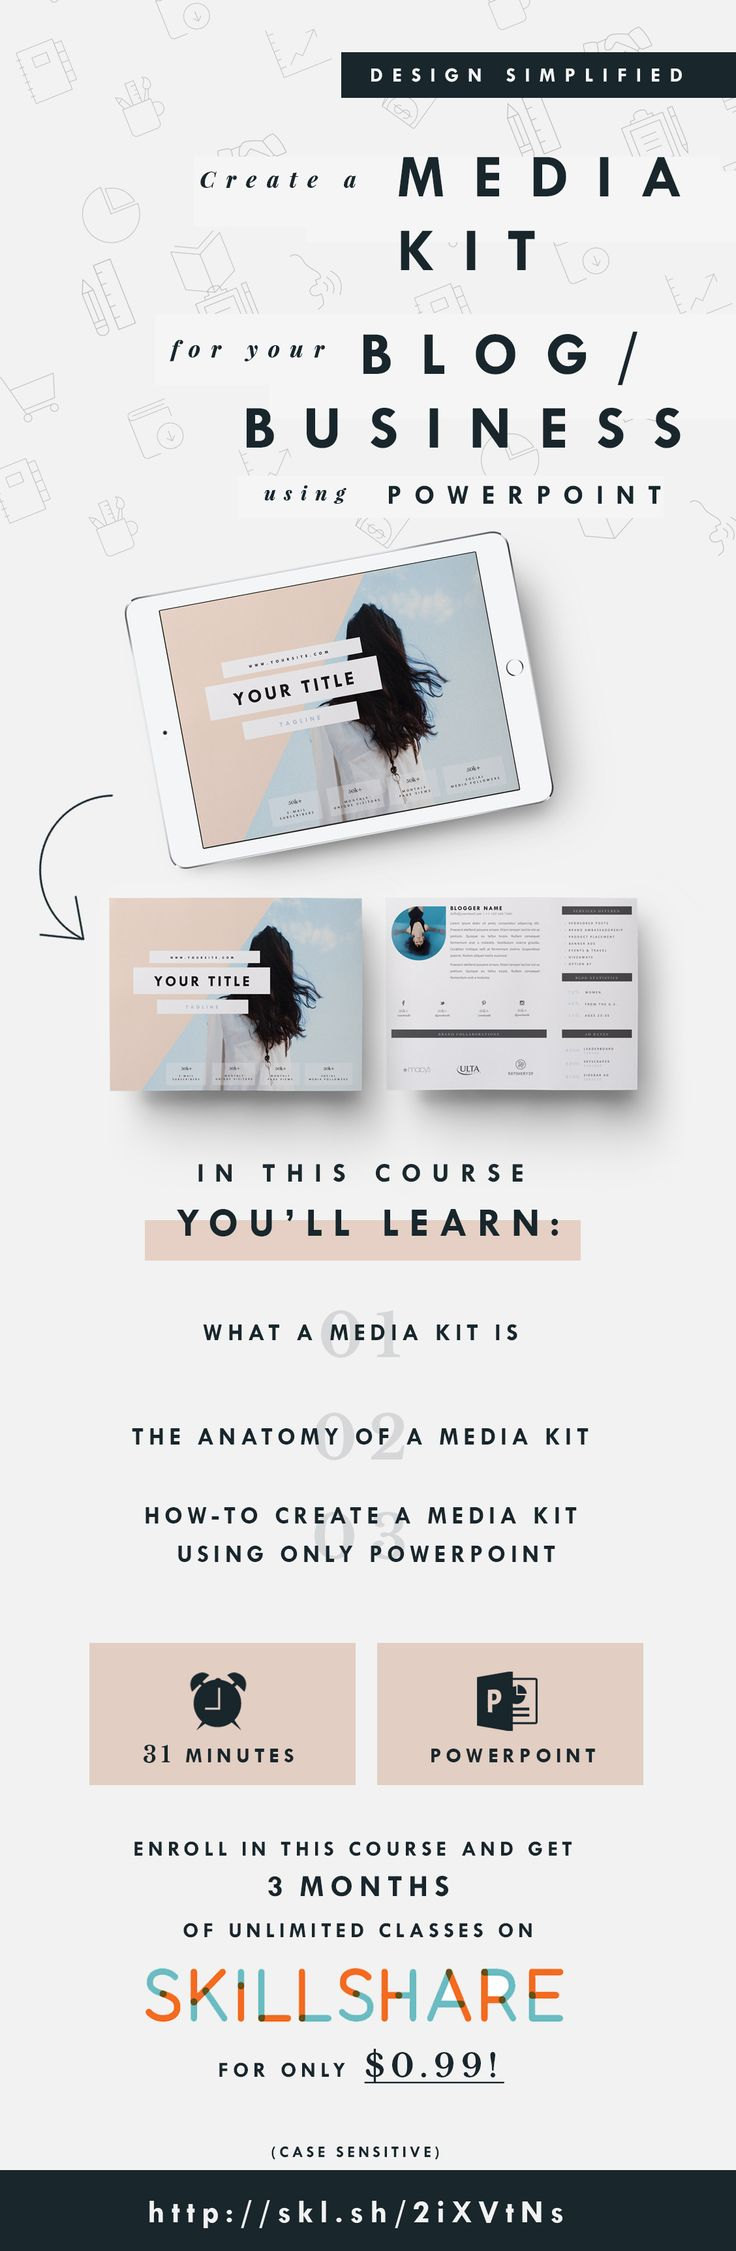 Learn How-To Create a Media Kit for Your Blog or Business using only PowerPoint! In this course you'll learn: 1) What a Media Kit Is 2) The Anatomy of a Media Kit and What to Include 3) Video Tutorial: Showing You How-To Create a Media Kit -- Sign-Up Today for ONLY $0.99 to take this course and gain access to ALL of the courses on Skillshare.com by clicking on the link below: --> http://skl.sh/2iXVtNs